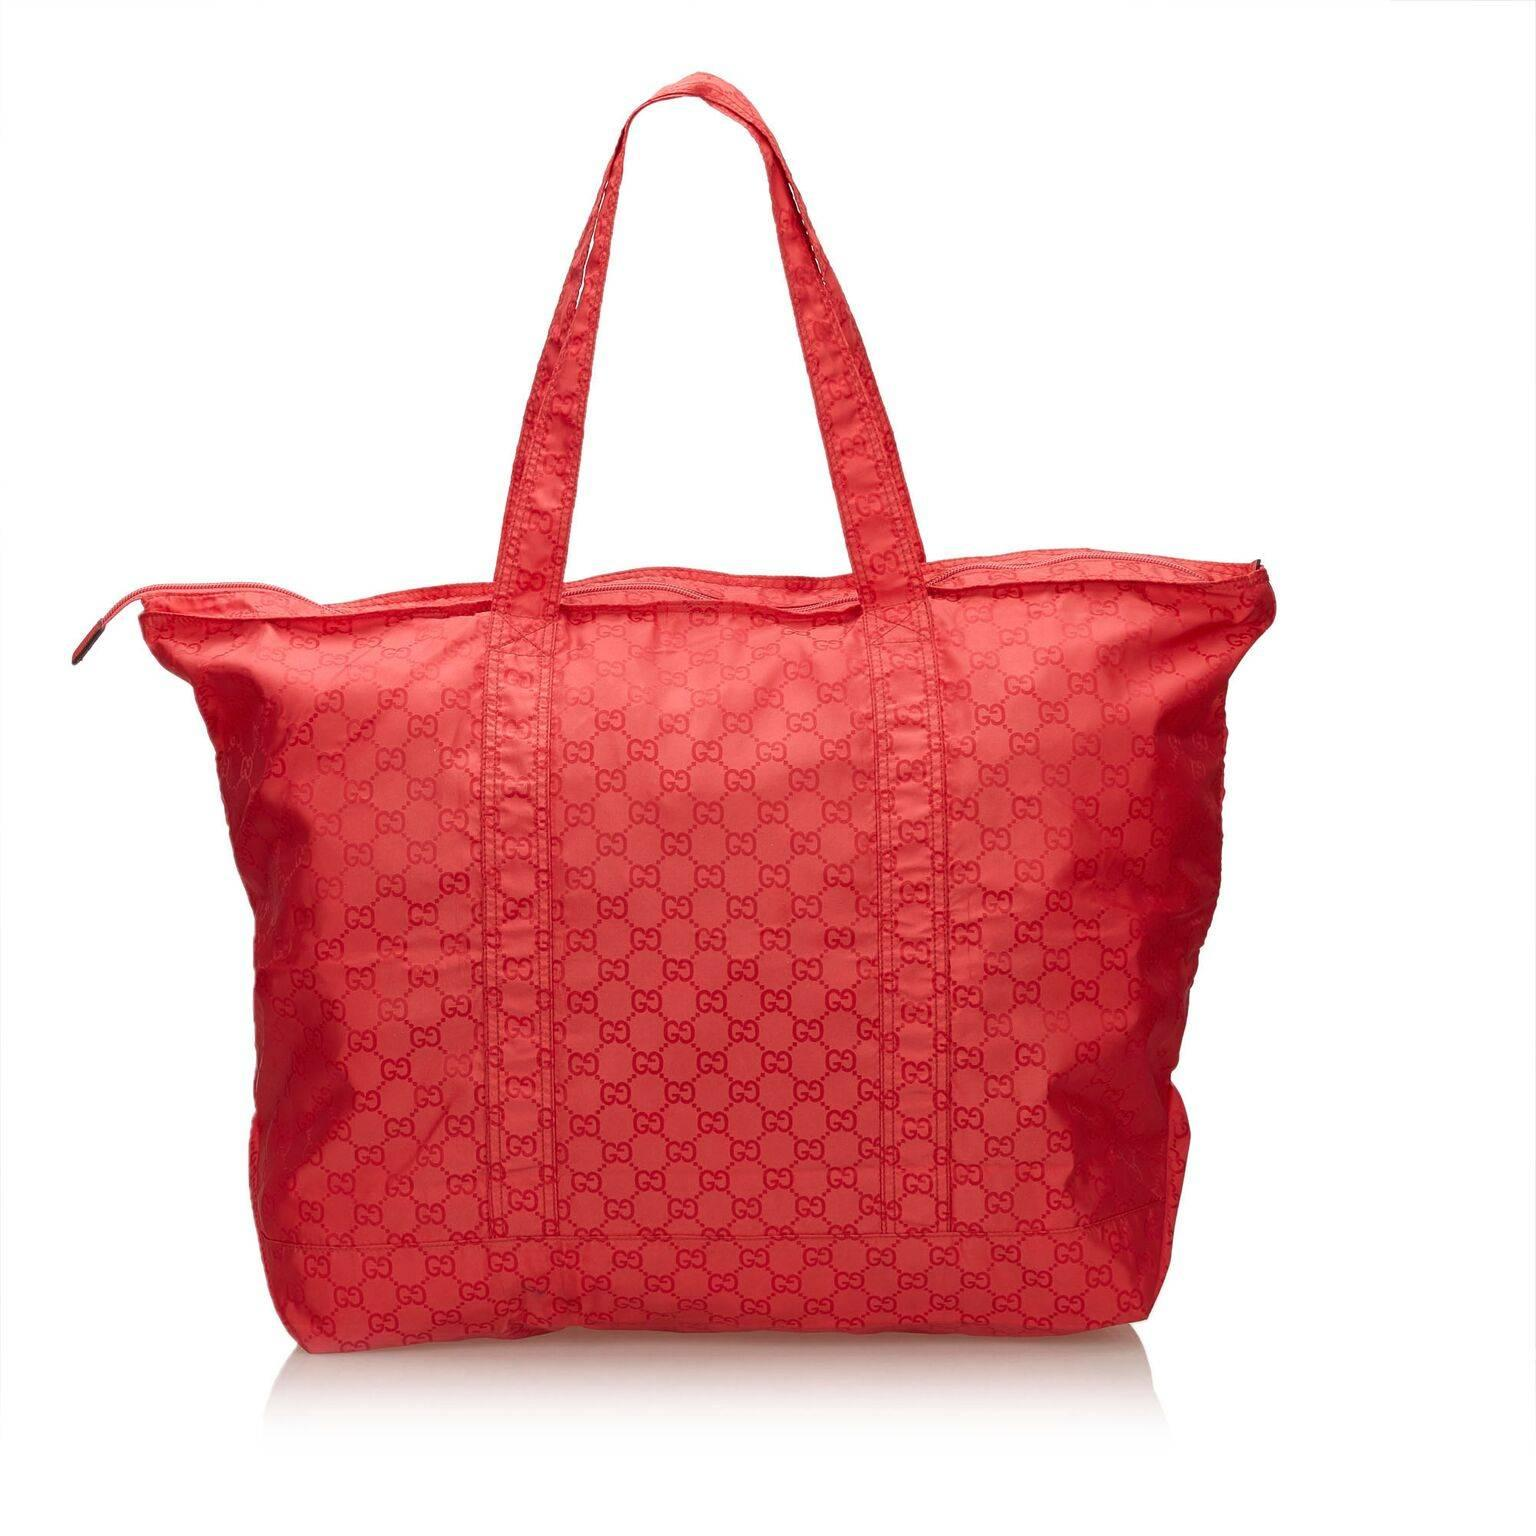 16777fba804 Gucci Guccissima Red Nylon Tote Bag For Sale at 1stdibs